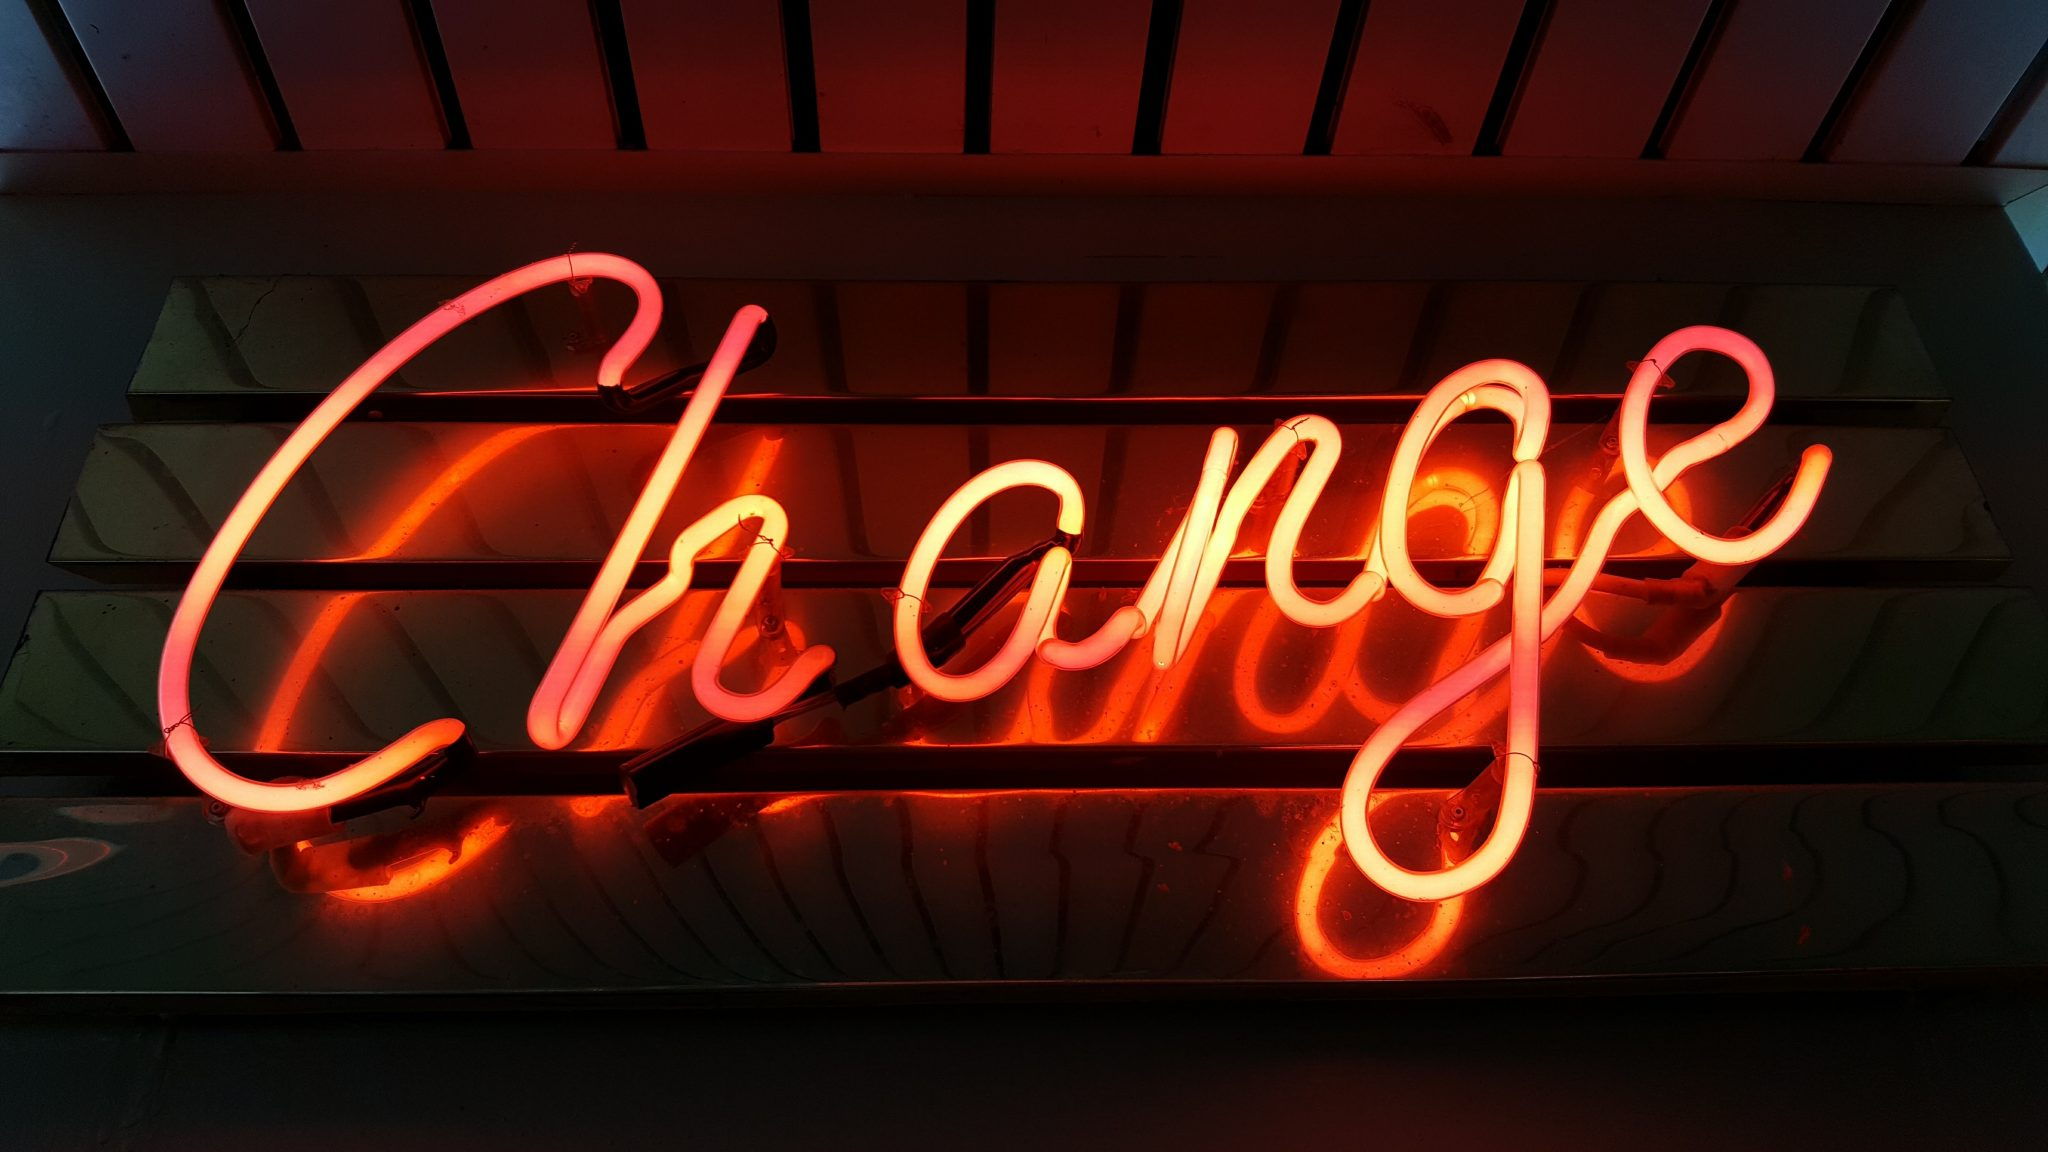 Adaptability and change